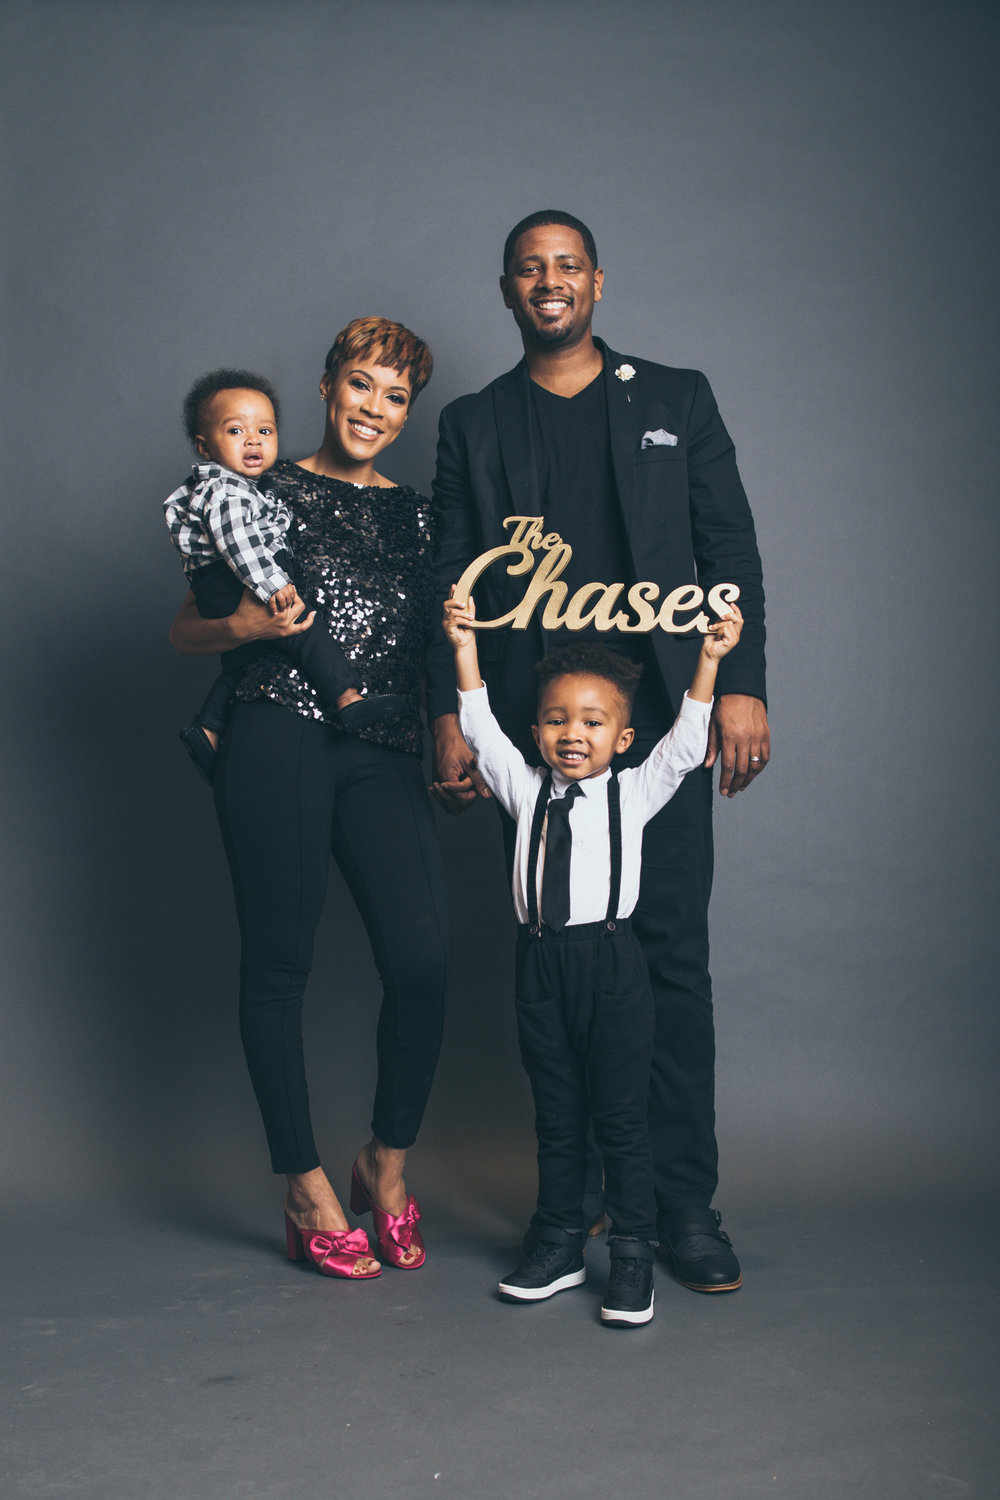 """Thank you sooo much we love them!!!! Thank you for your patience with us and for always being so awesome!!"" - The Chase Family"